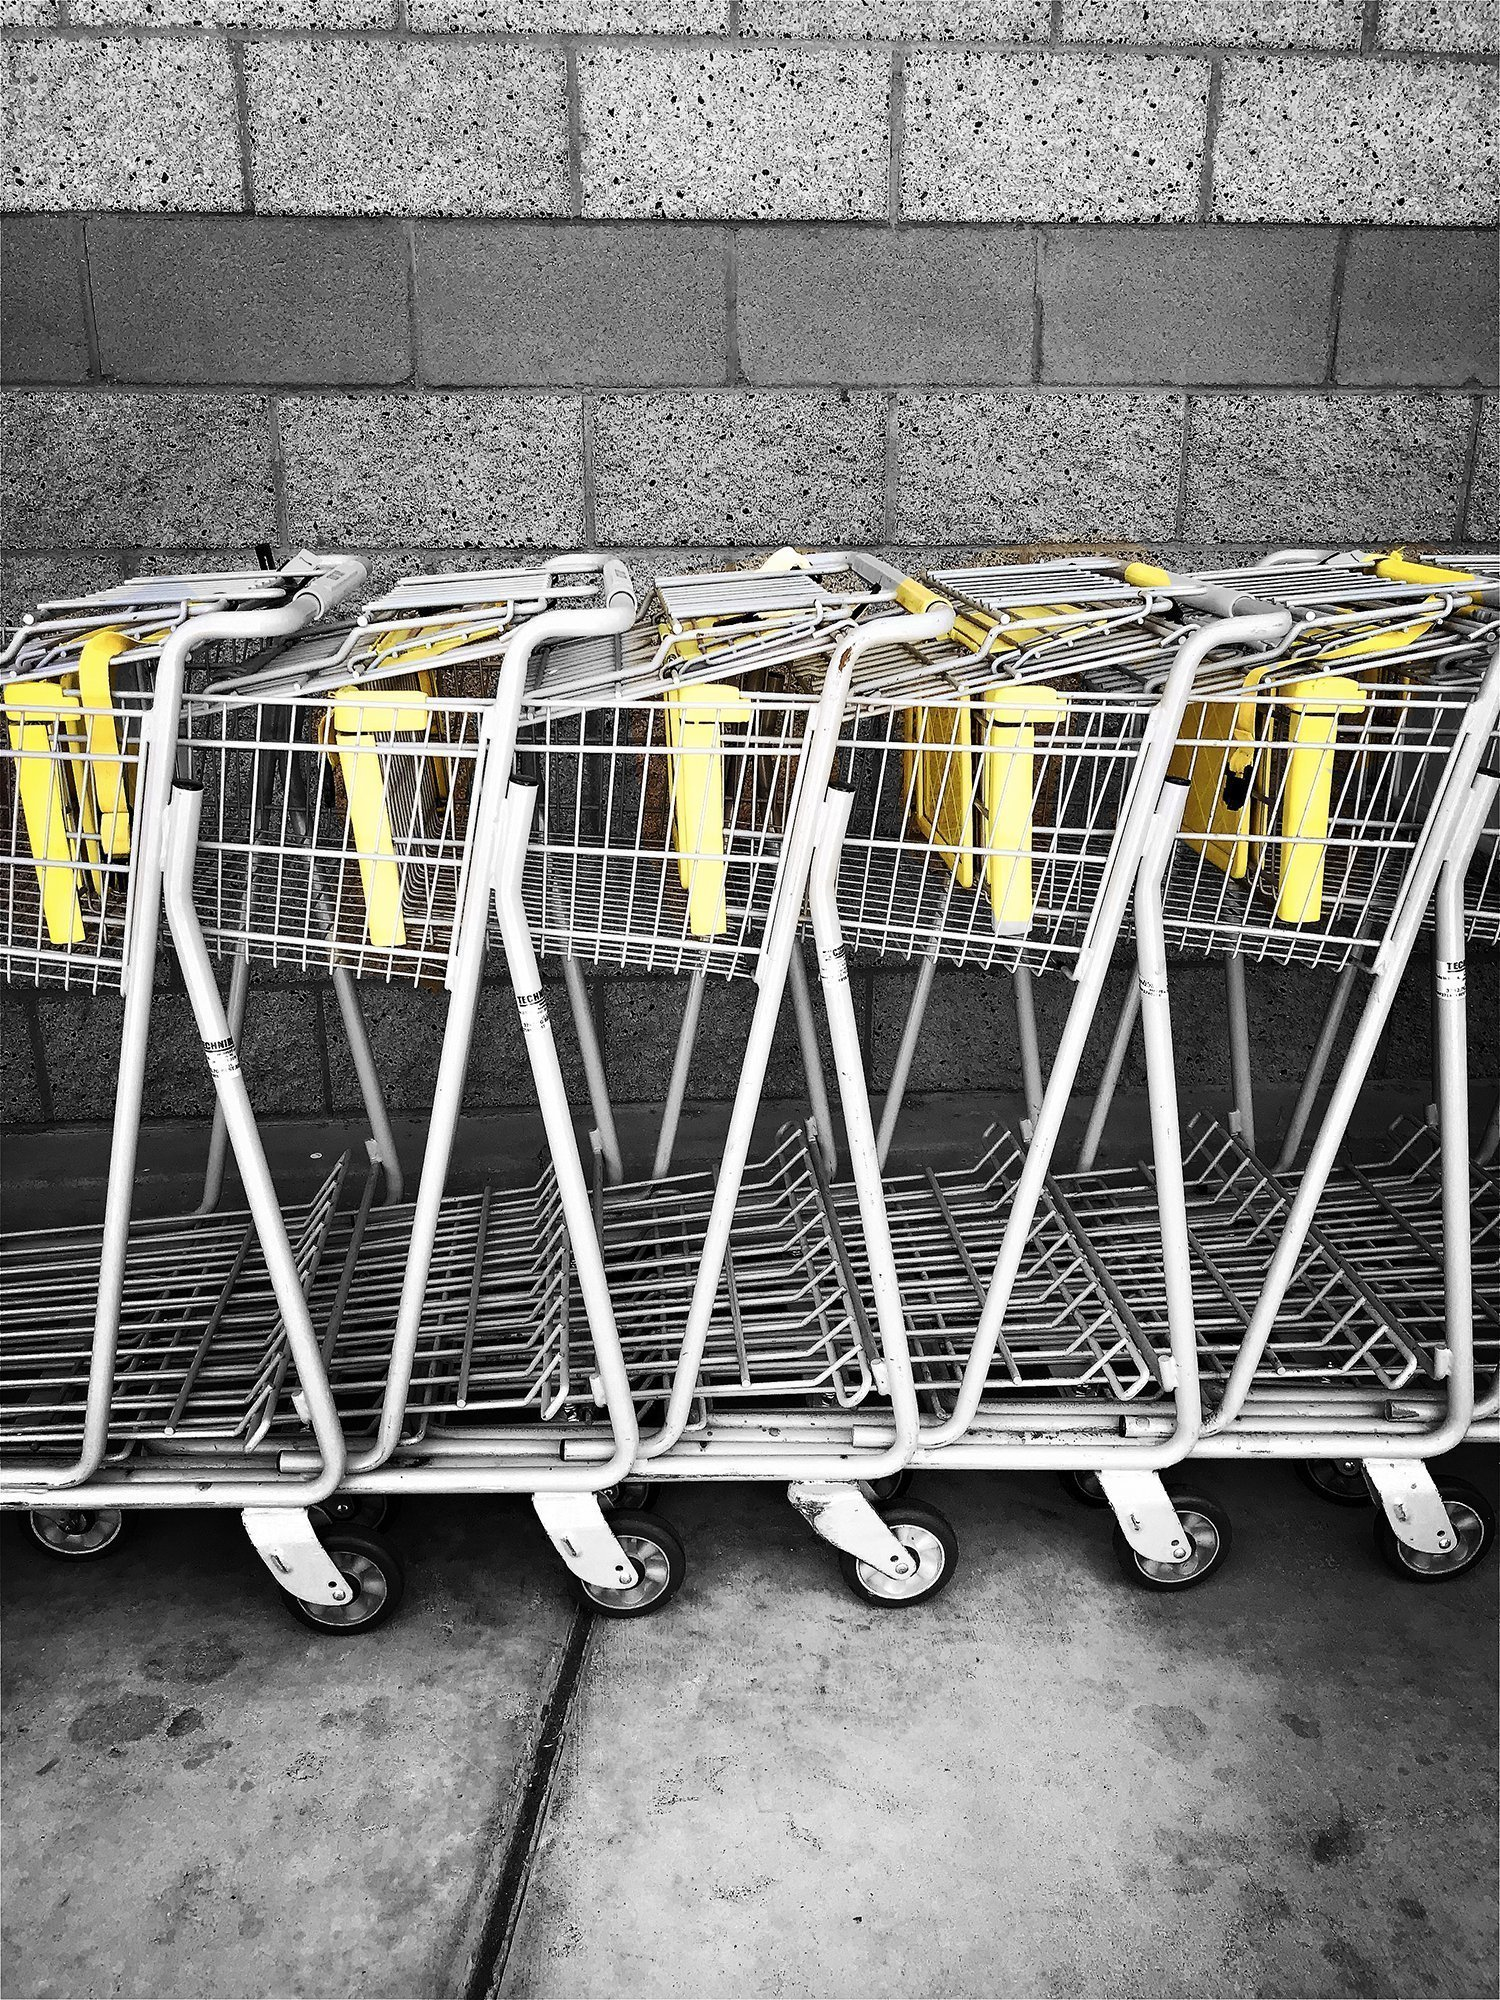 Life of a Shopping Cart